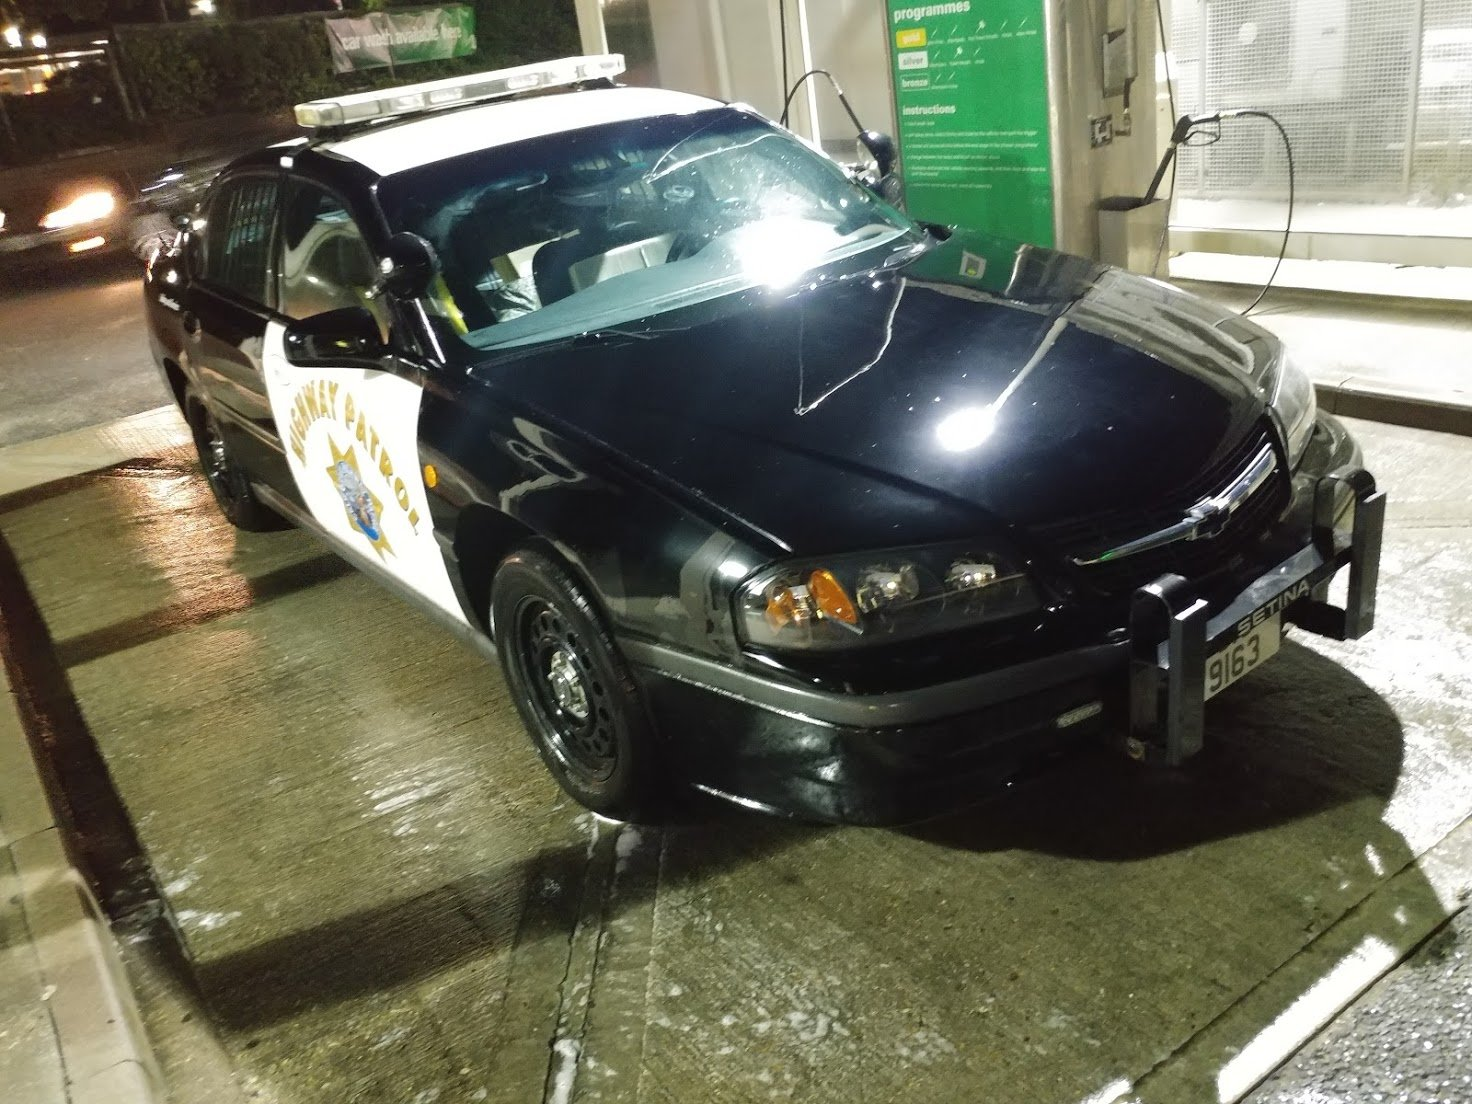 2005 Chevrolet Impala 9C1 real American Police car For Sale (picture 5 of 5)